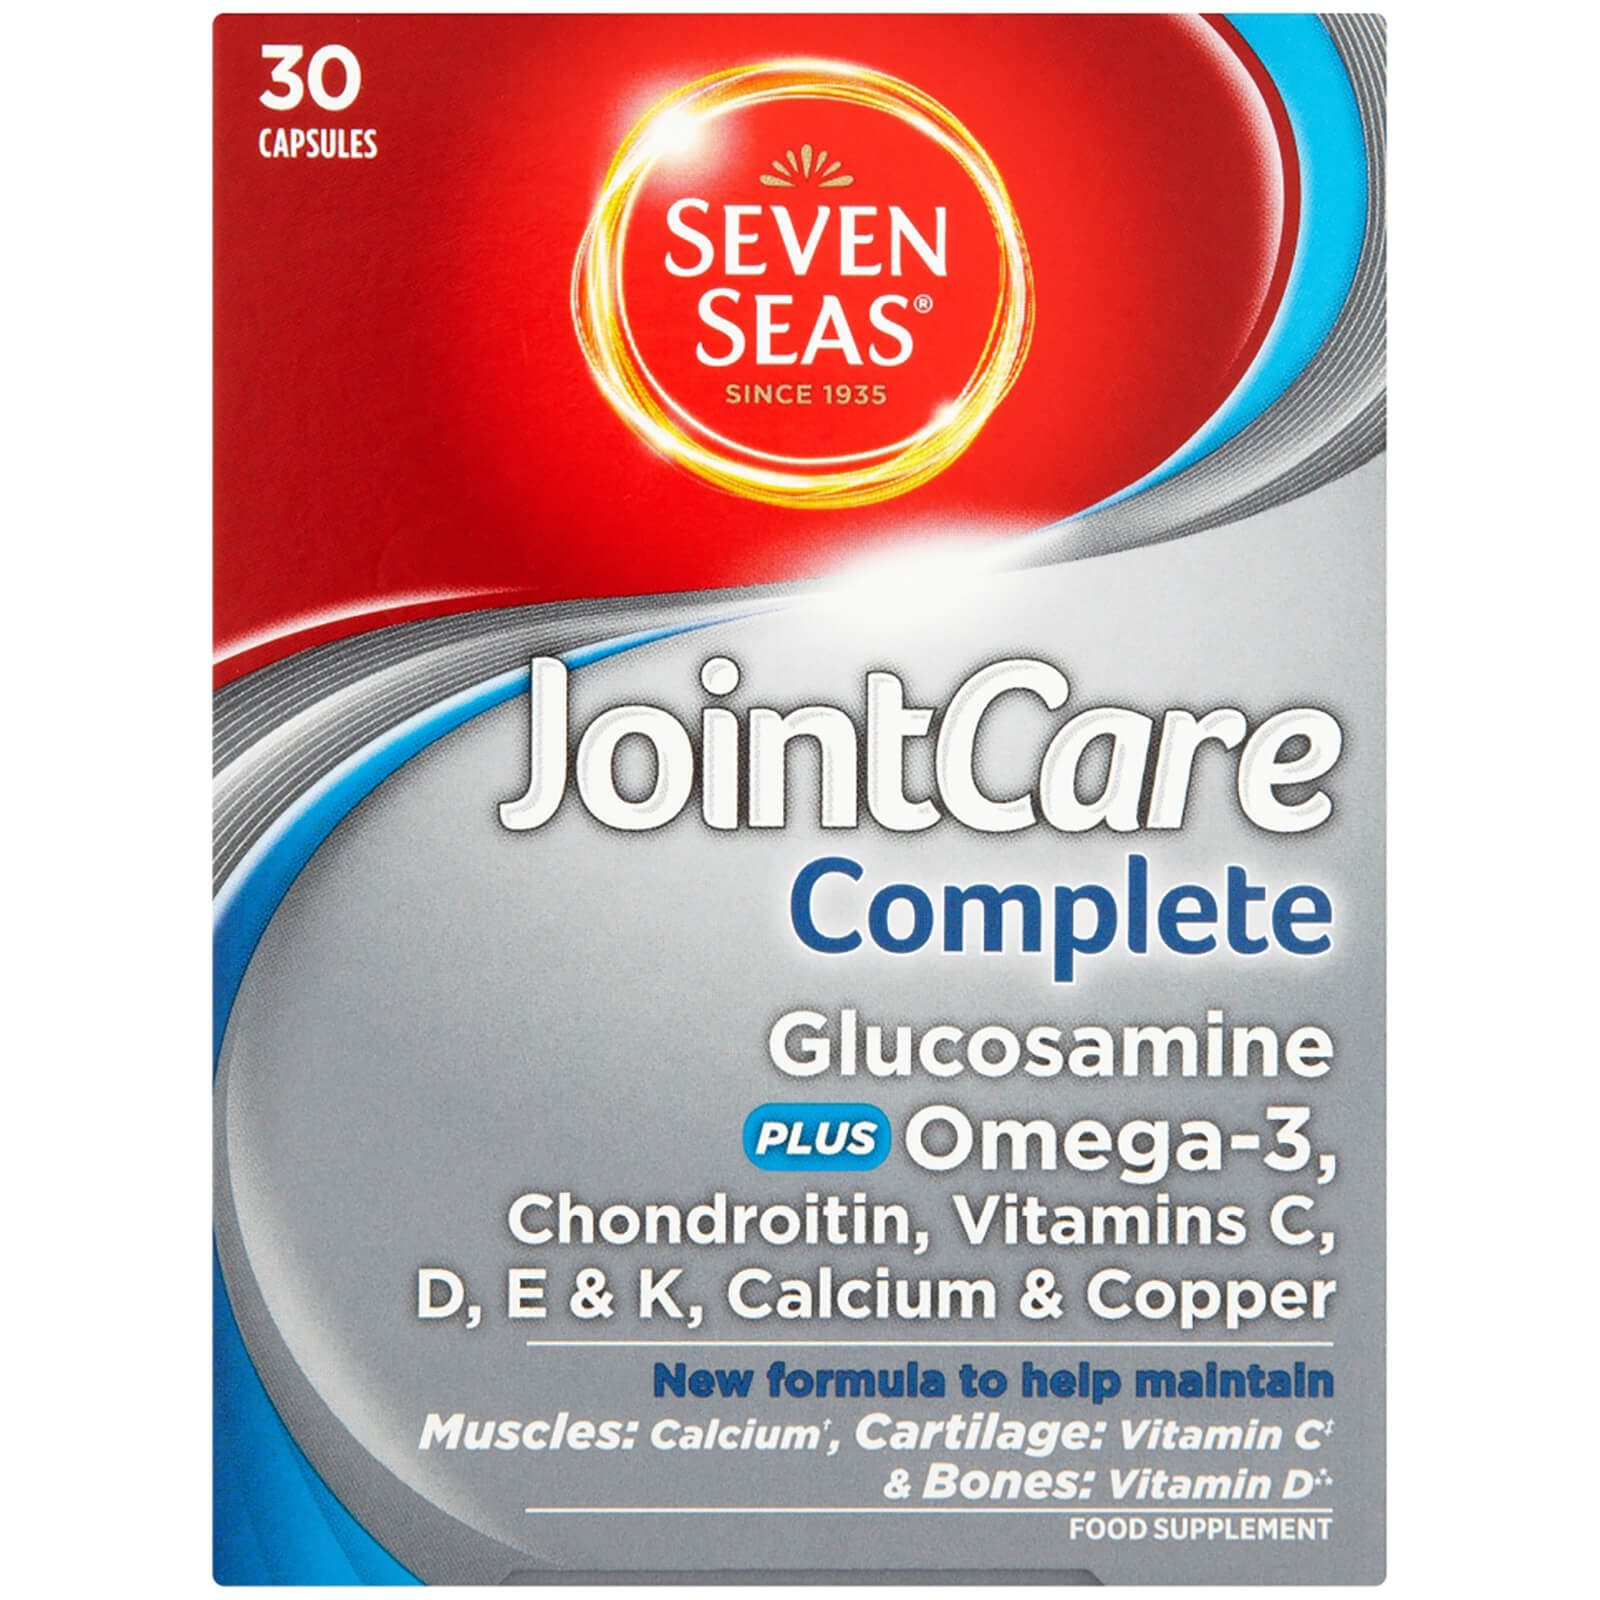 Seven Seas JointCare Complete - 30 Capsules